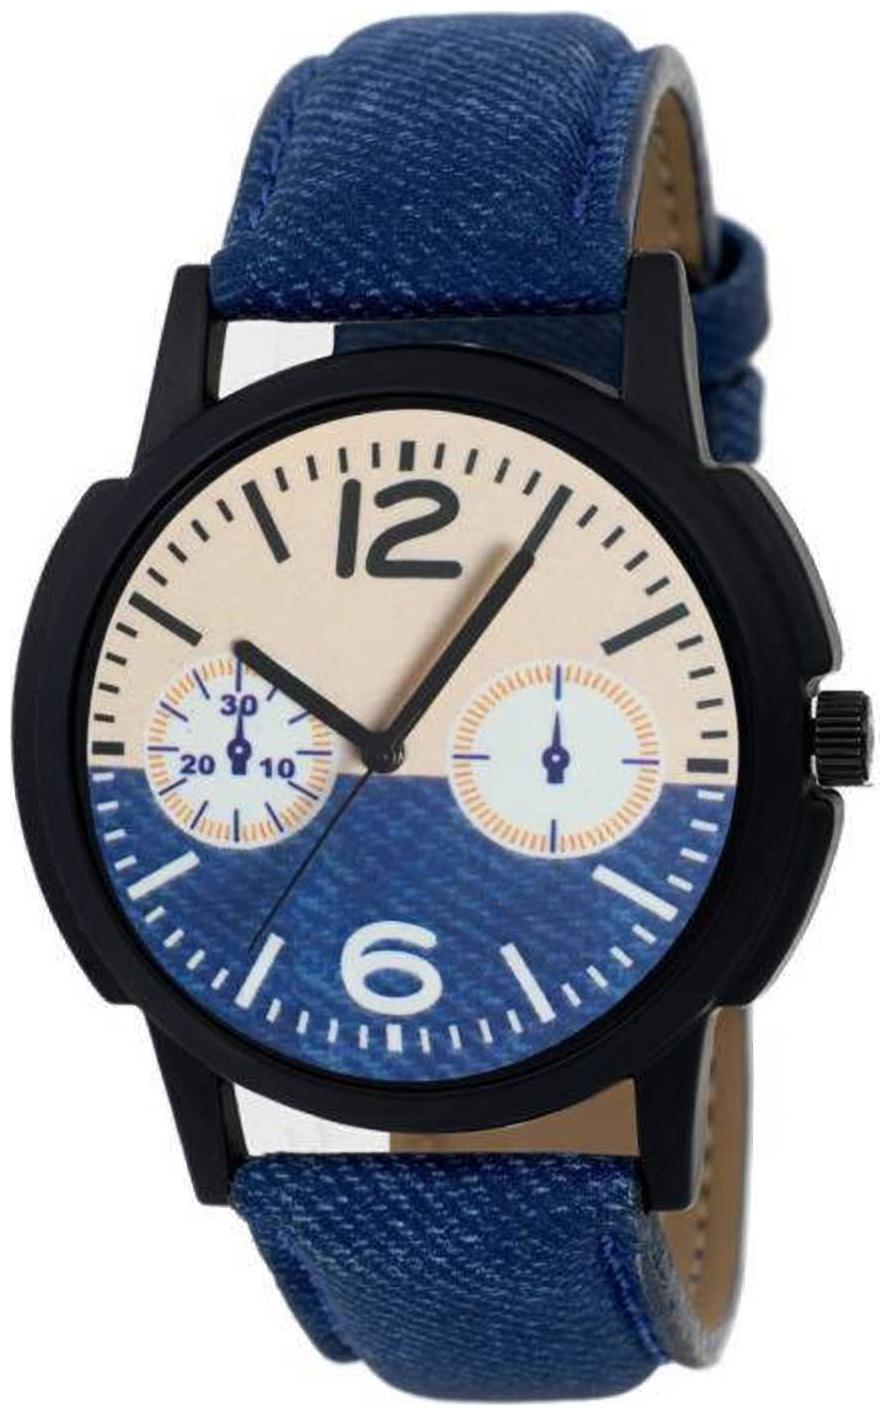 SAMARPAN STYLISH NEW COLLECTION BLUE ANALOG WATCH FOR MEN    BOYS